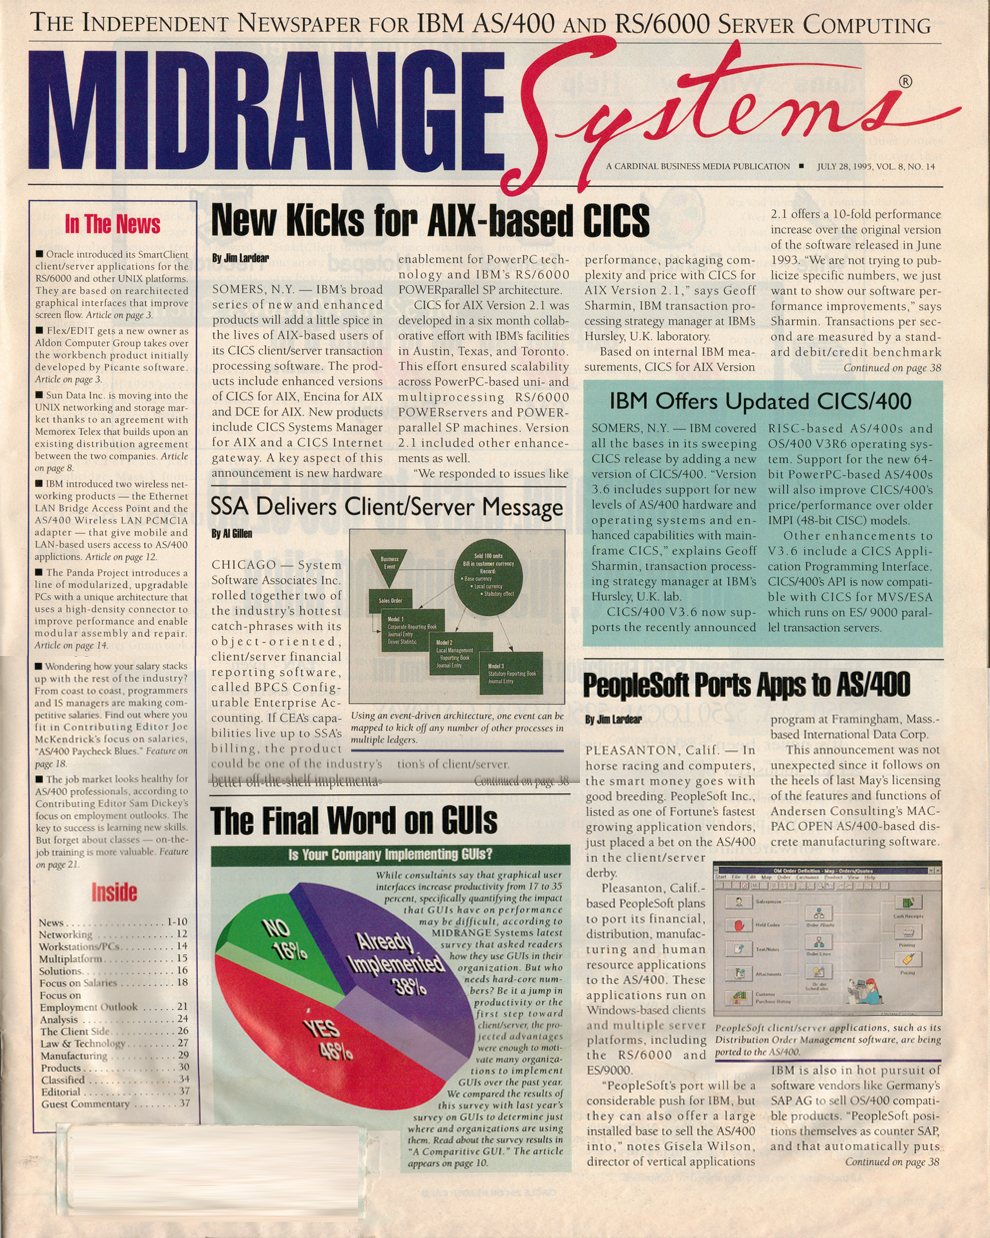 Midrange Computing July 28, 1995